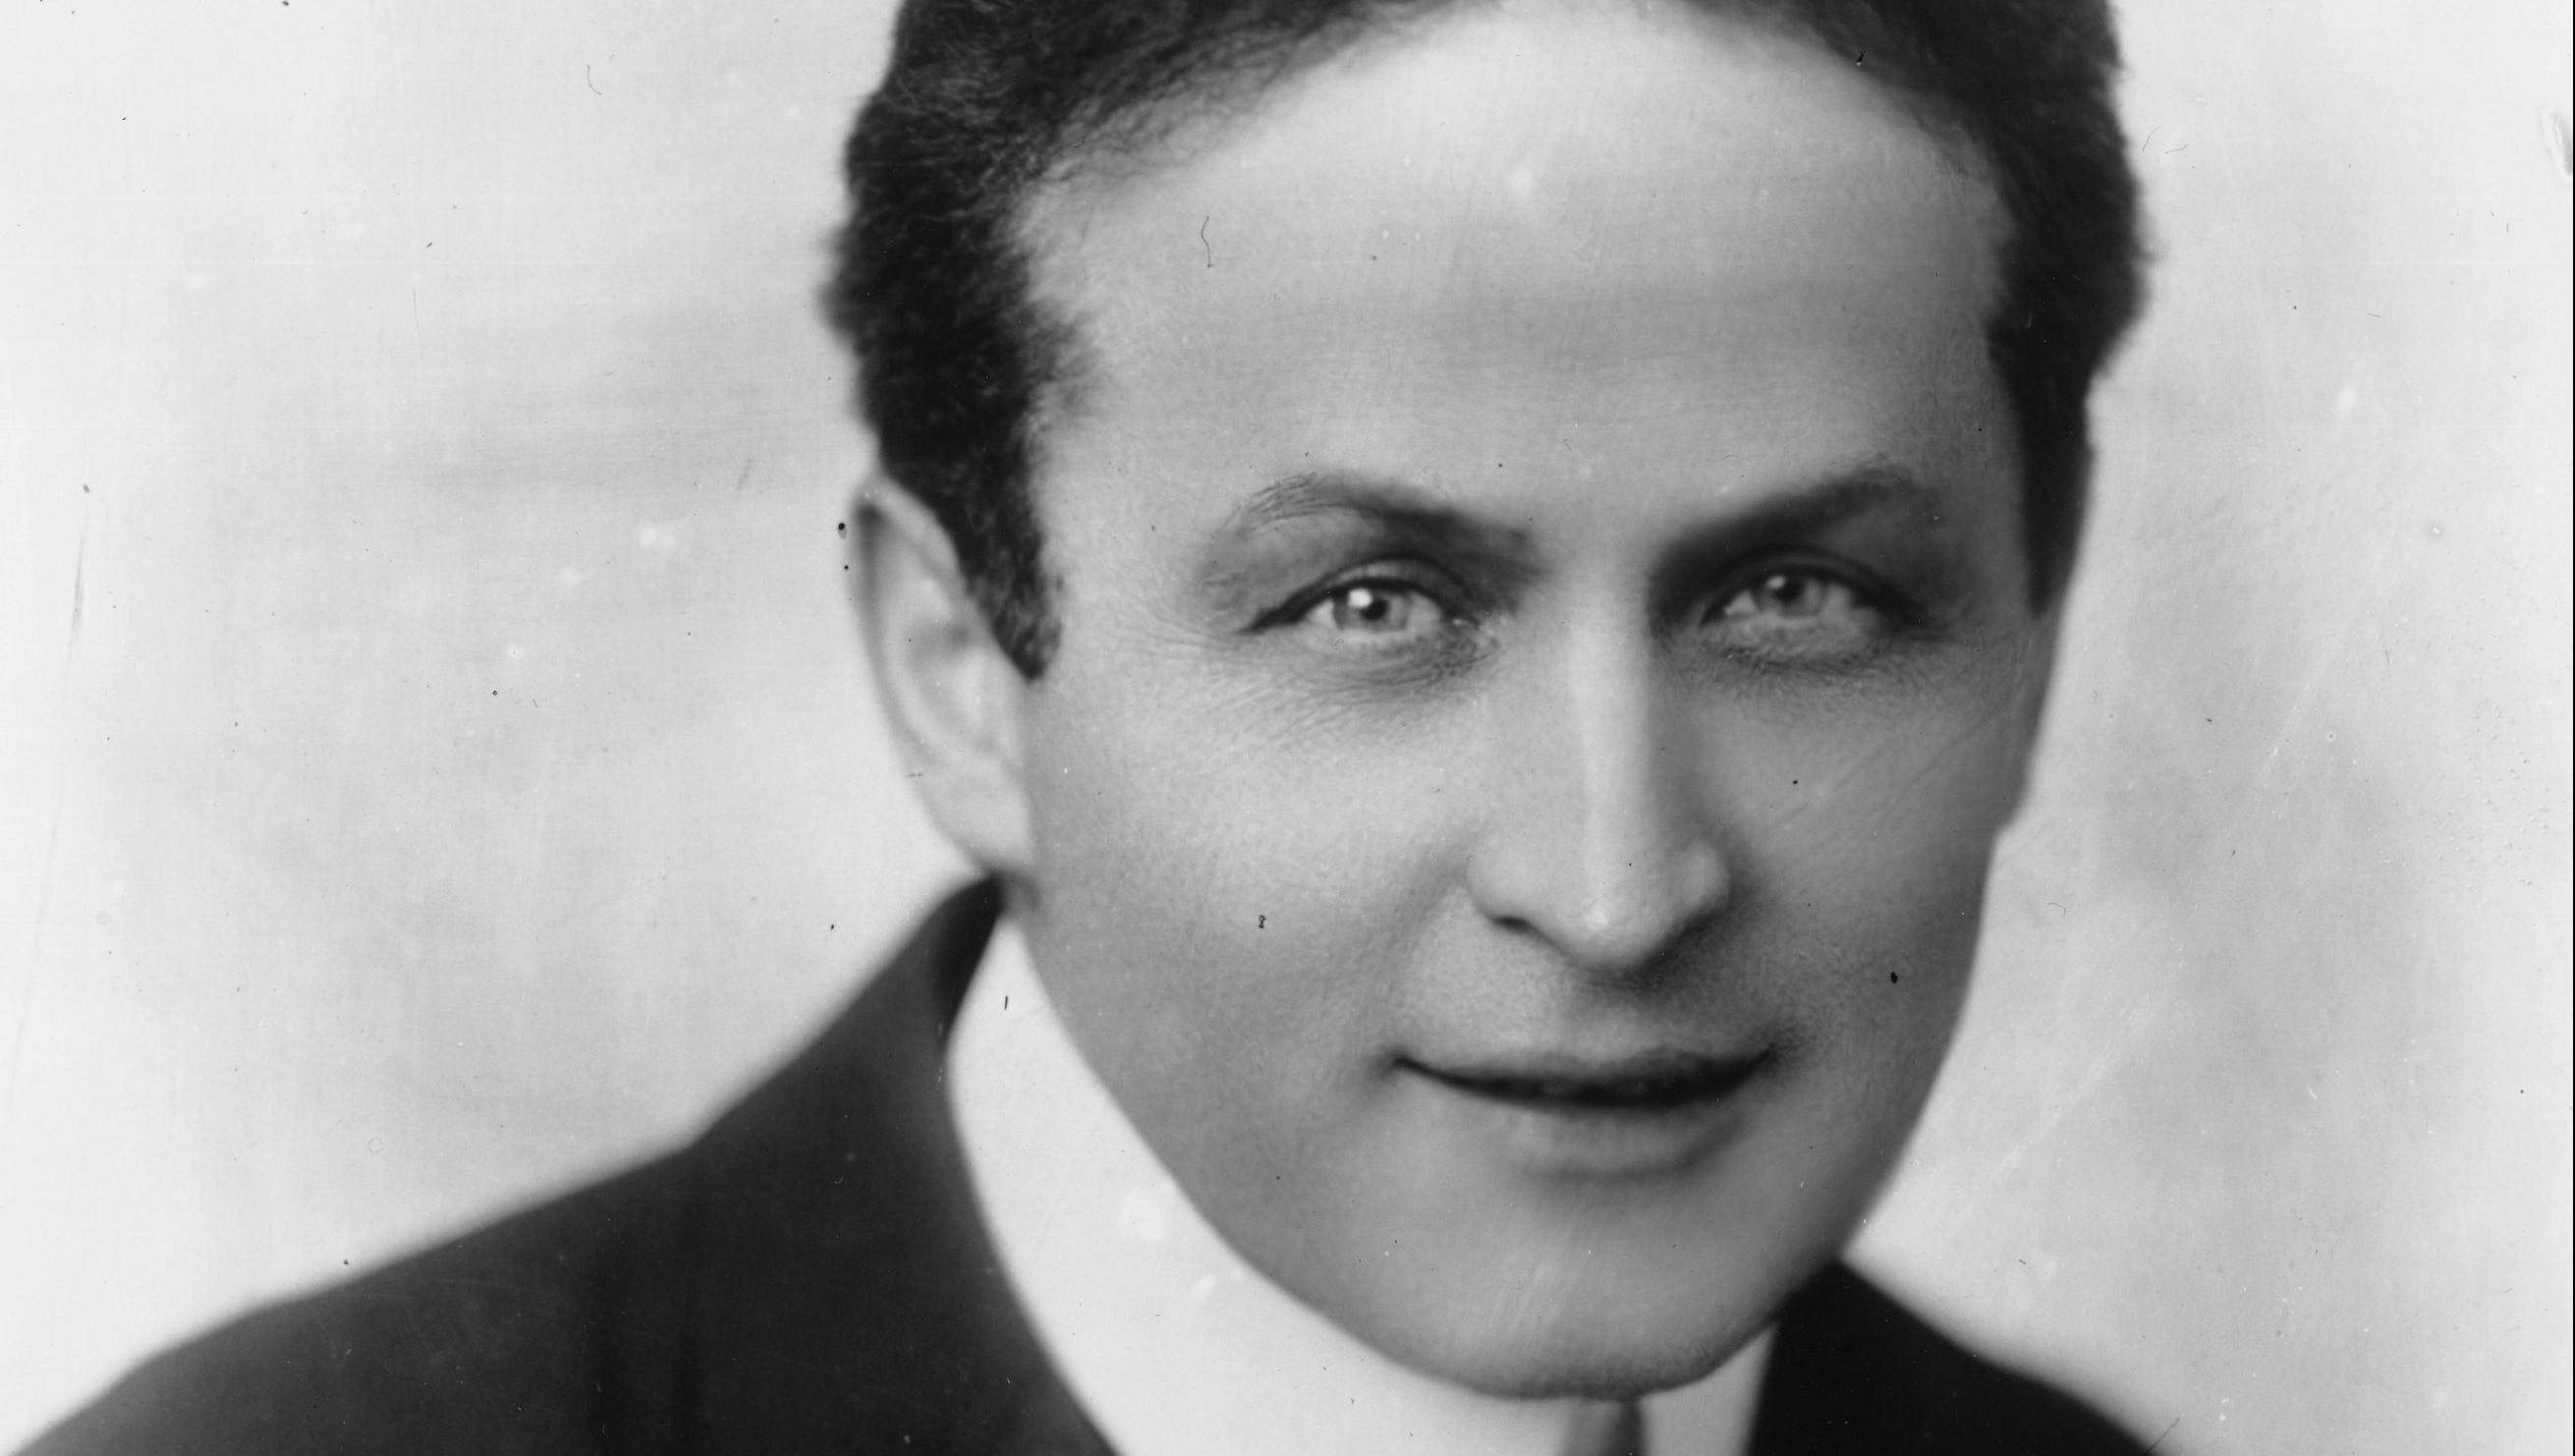 Did Harry Houdini Die Doing One of His Famous Escape Stunts?